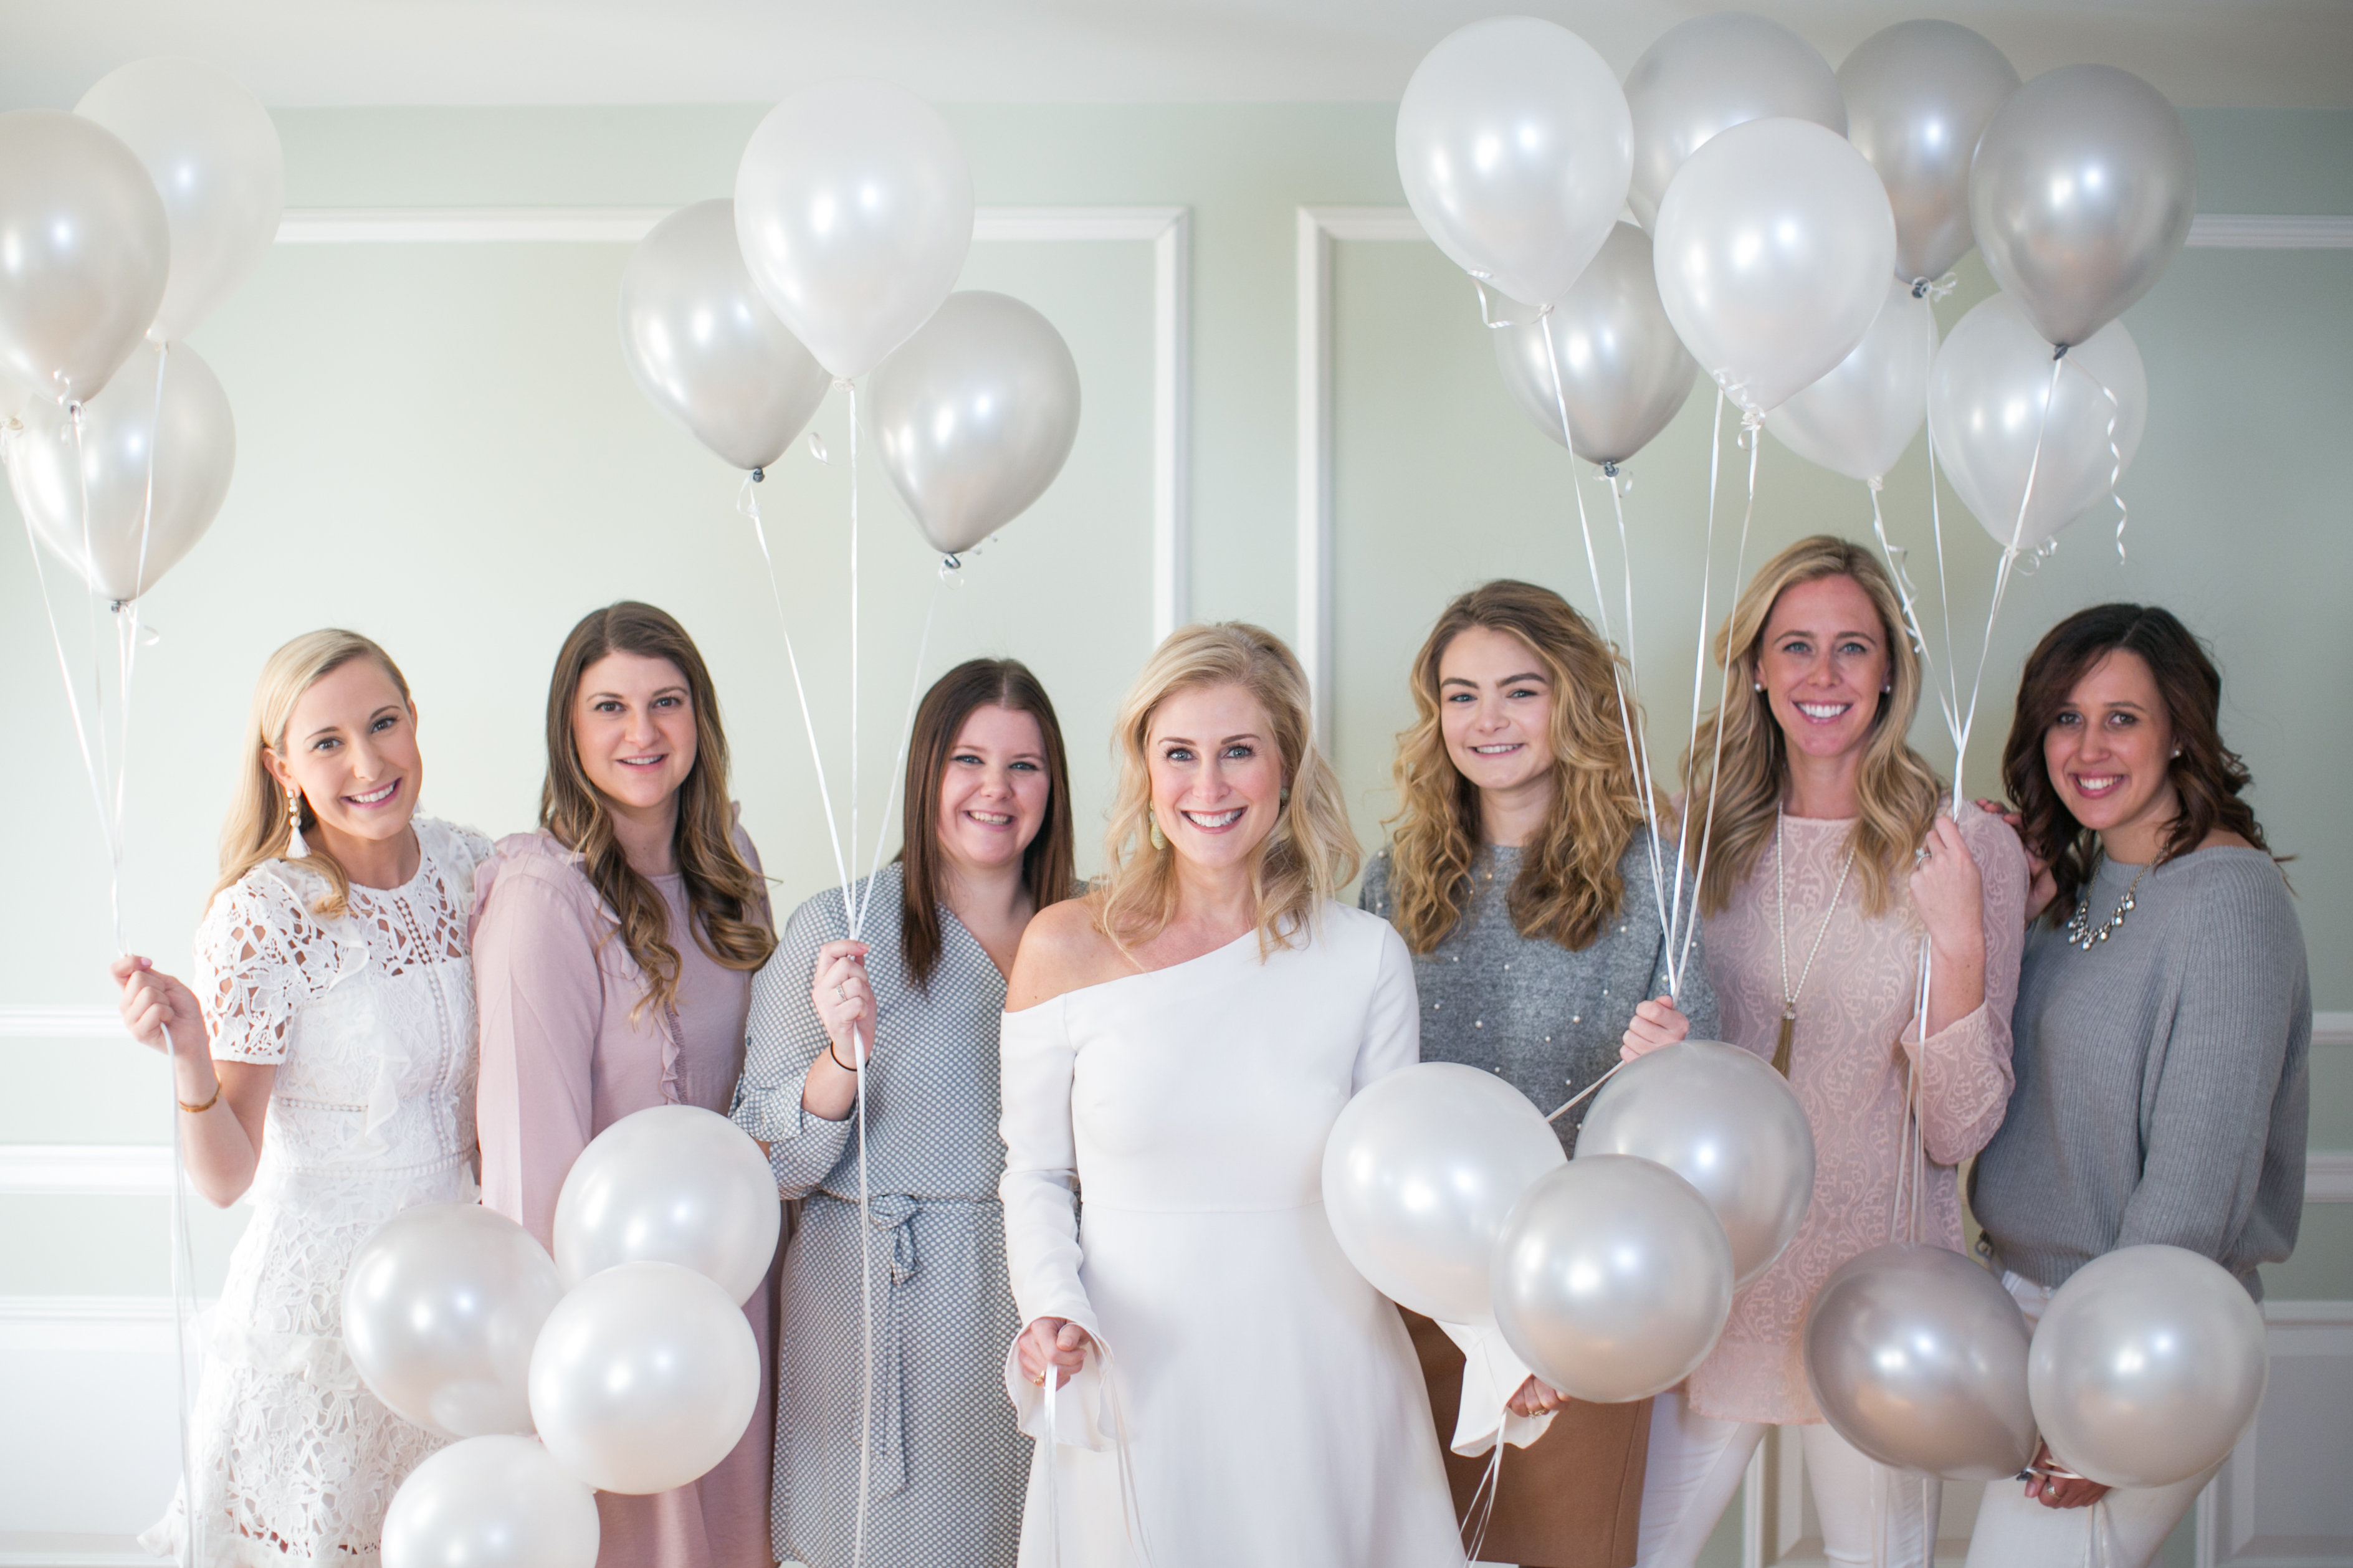 The White Dress by the shore celebrates 14 years of business